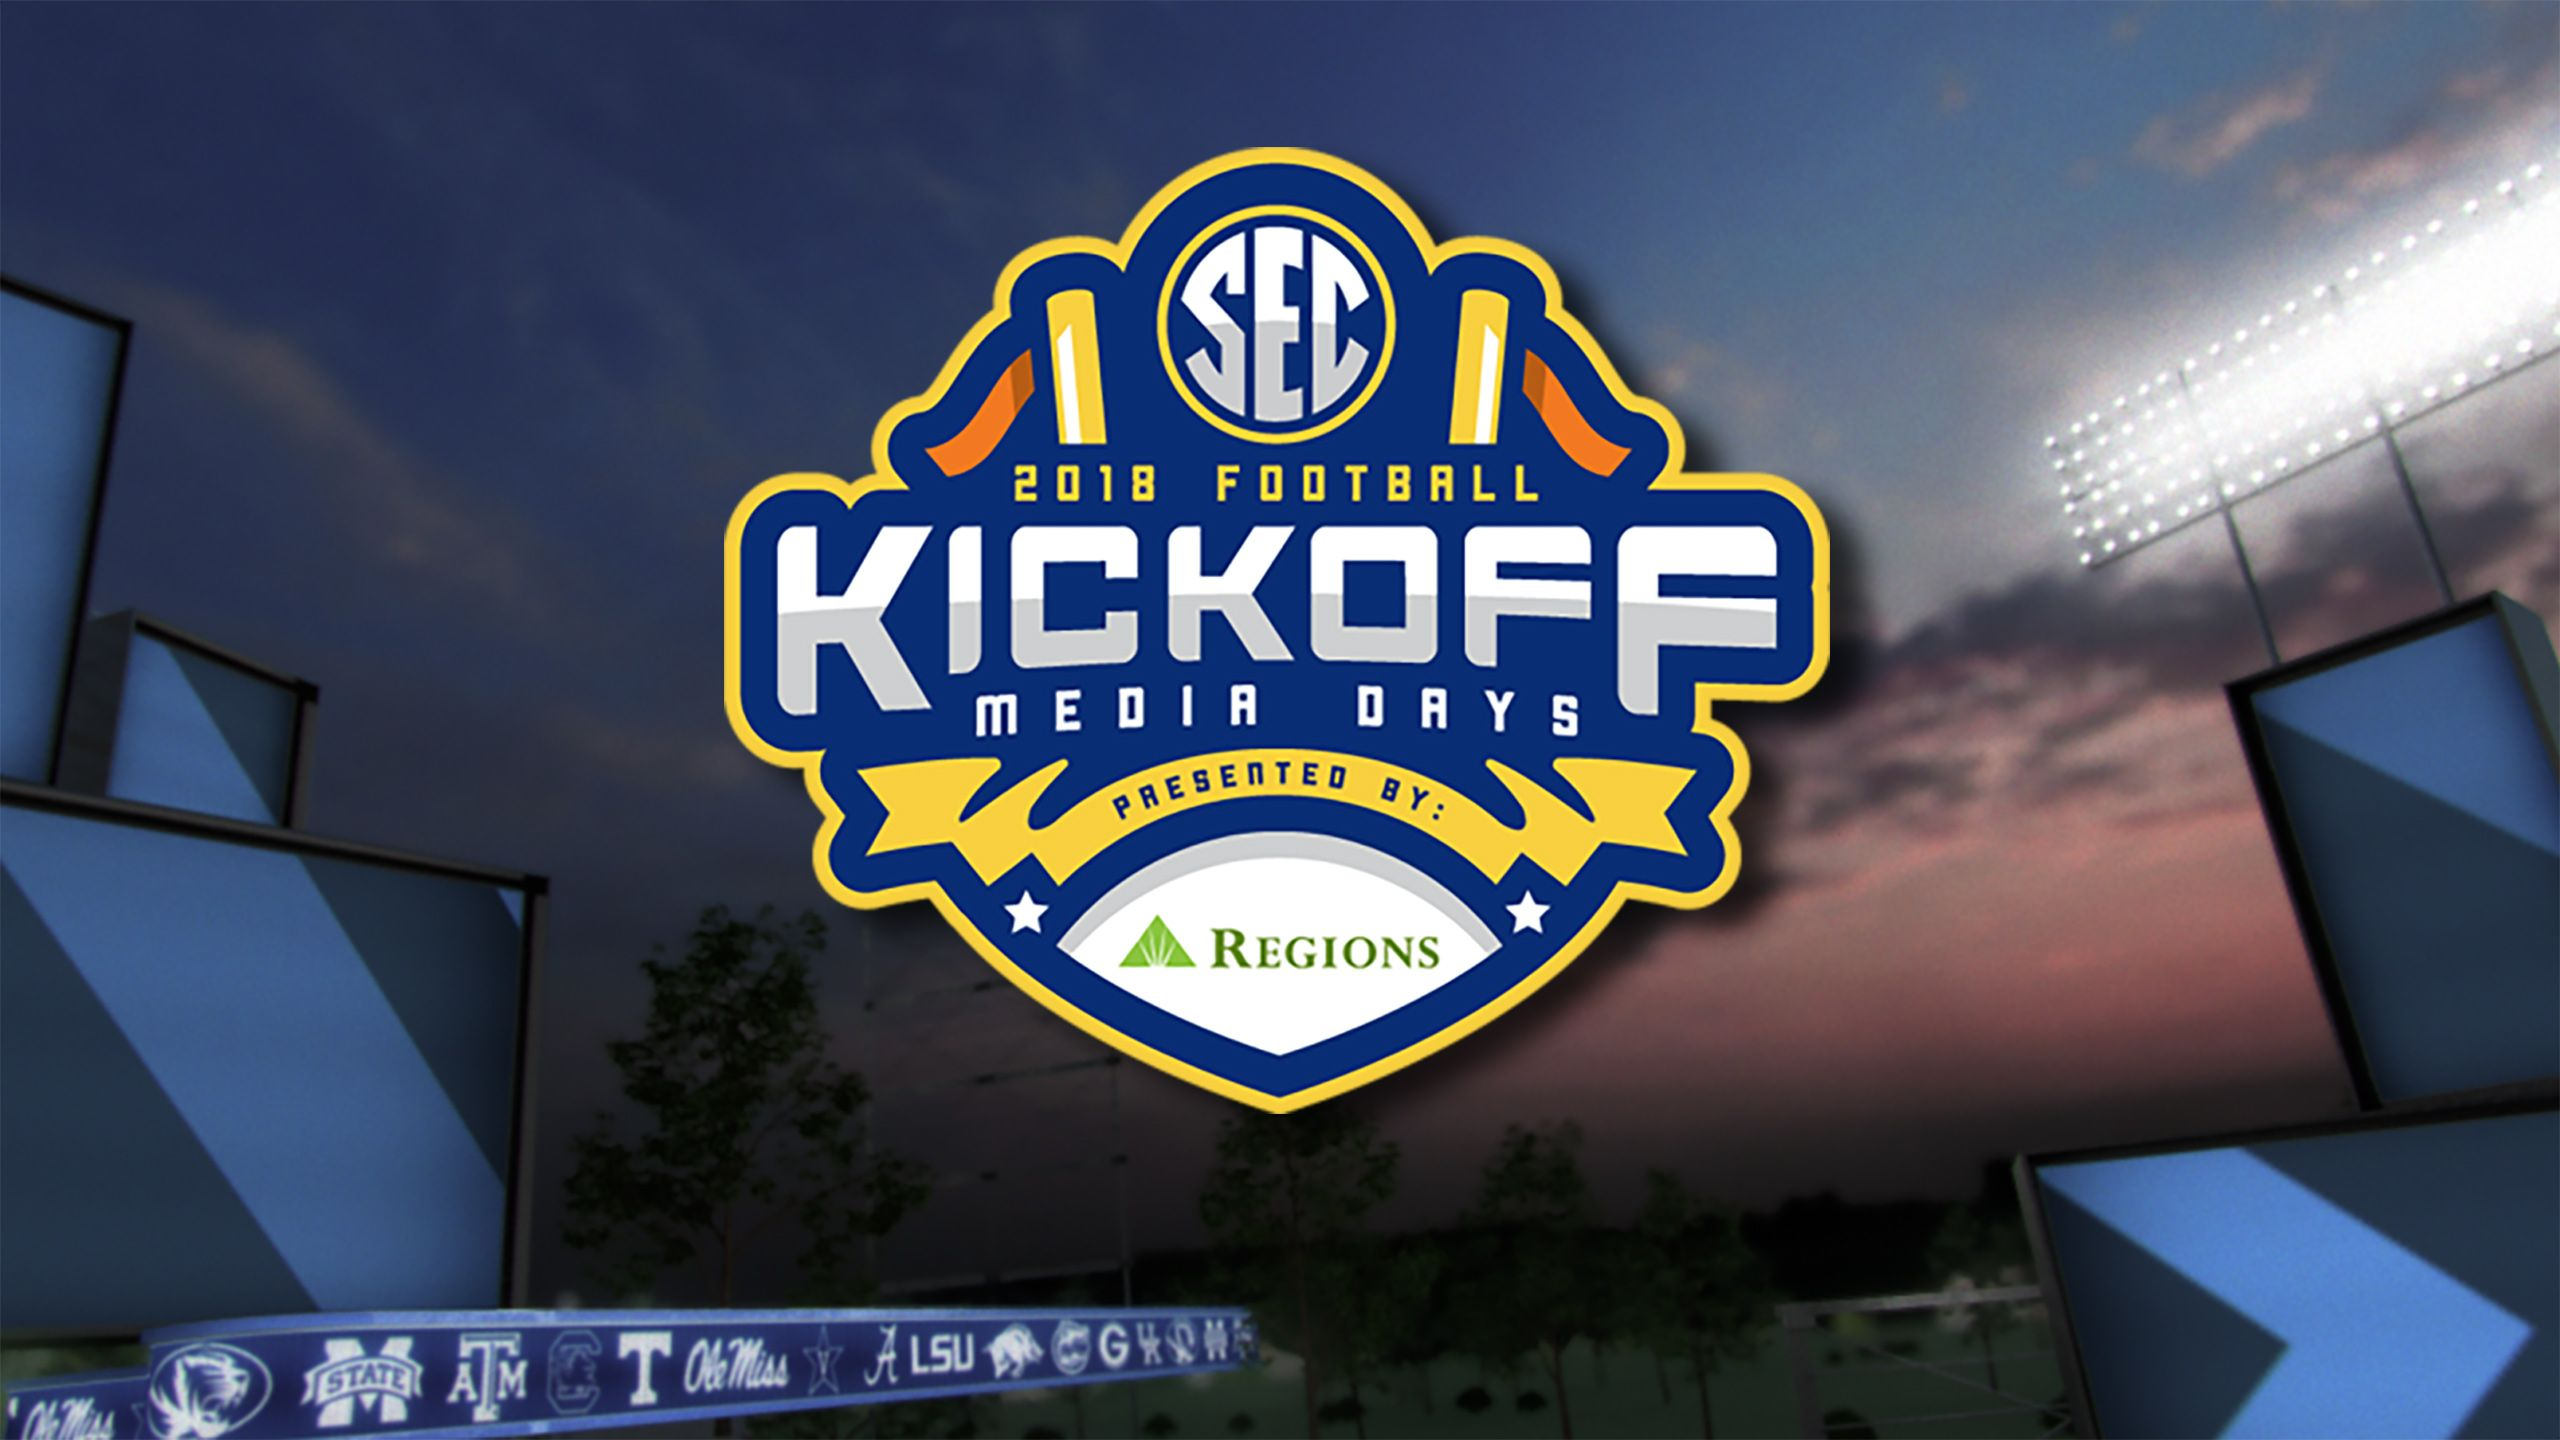 SEC Now: 2018 SEC Kickoff Presented by Regions Bank